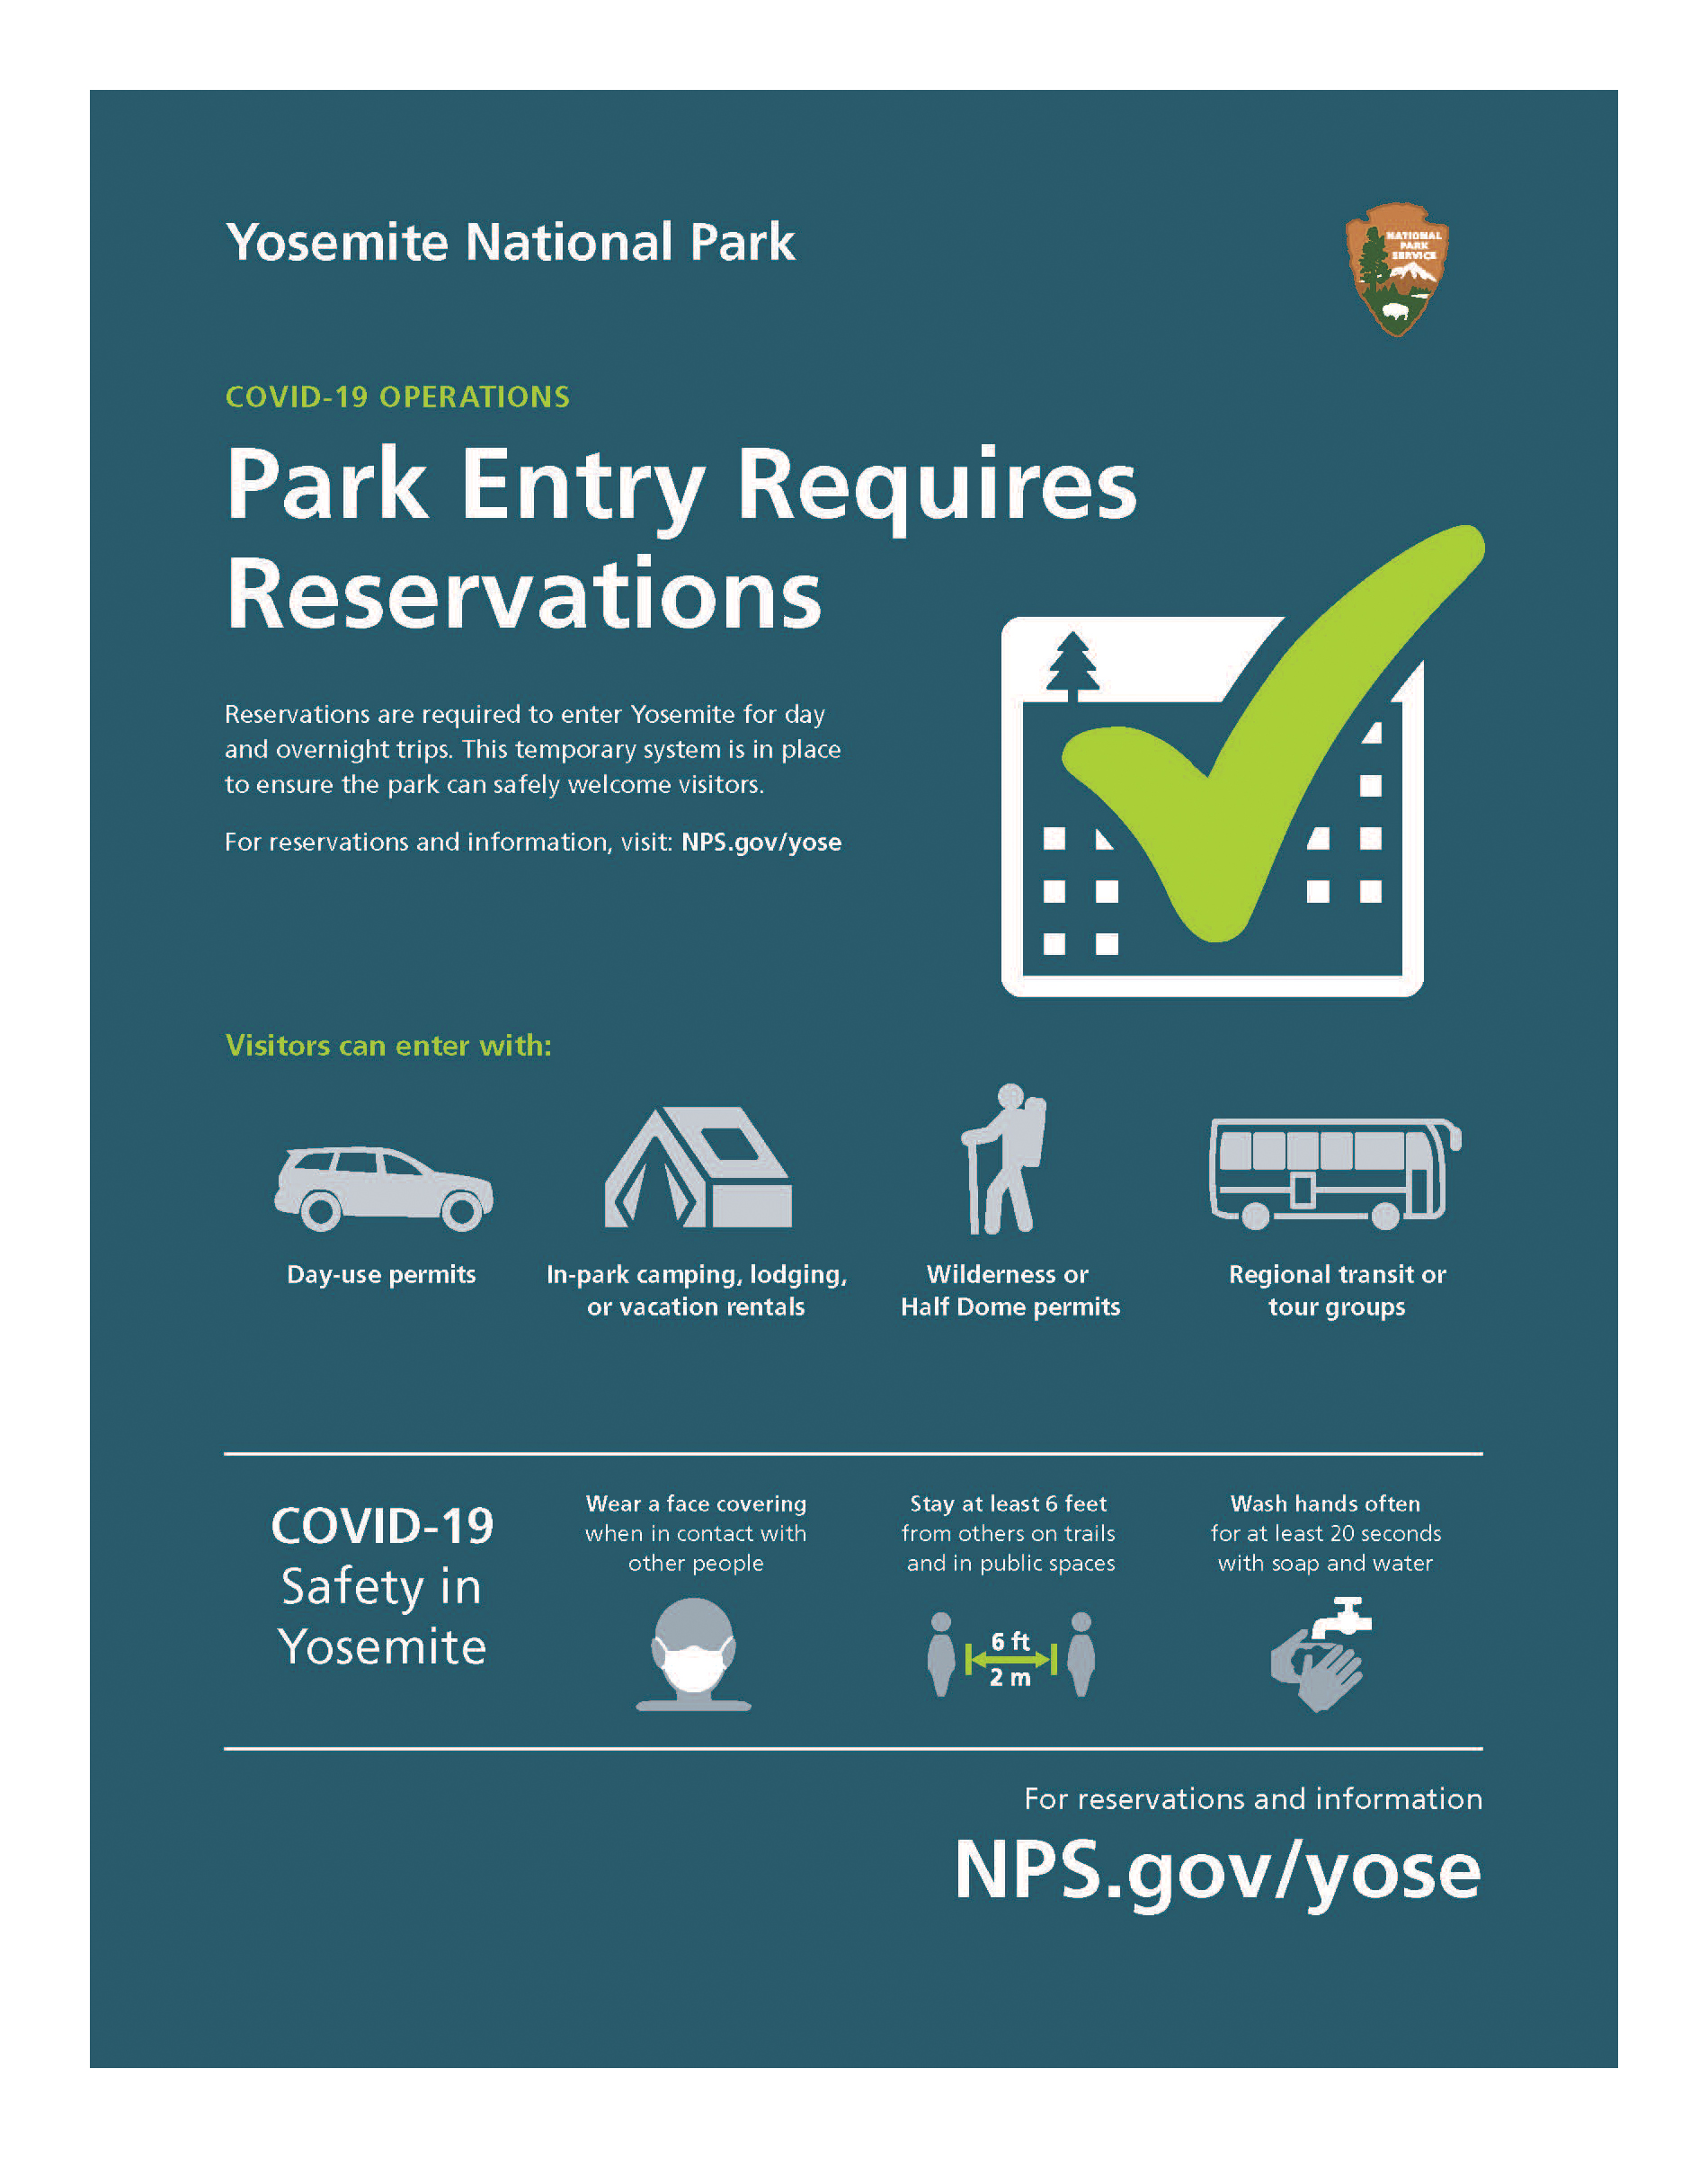 Park Entry Requires Reservations